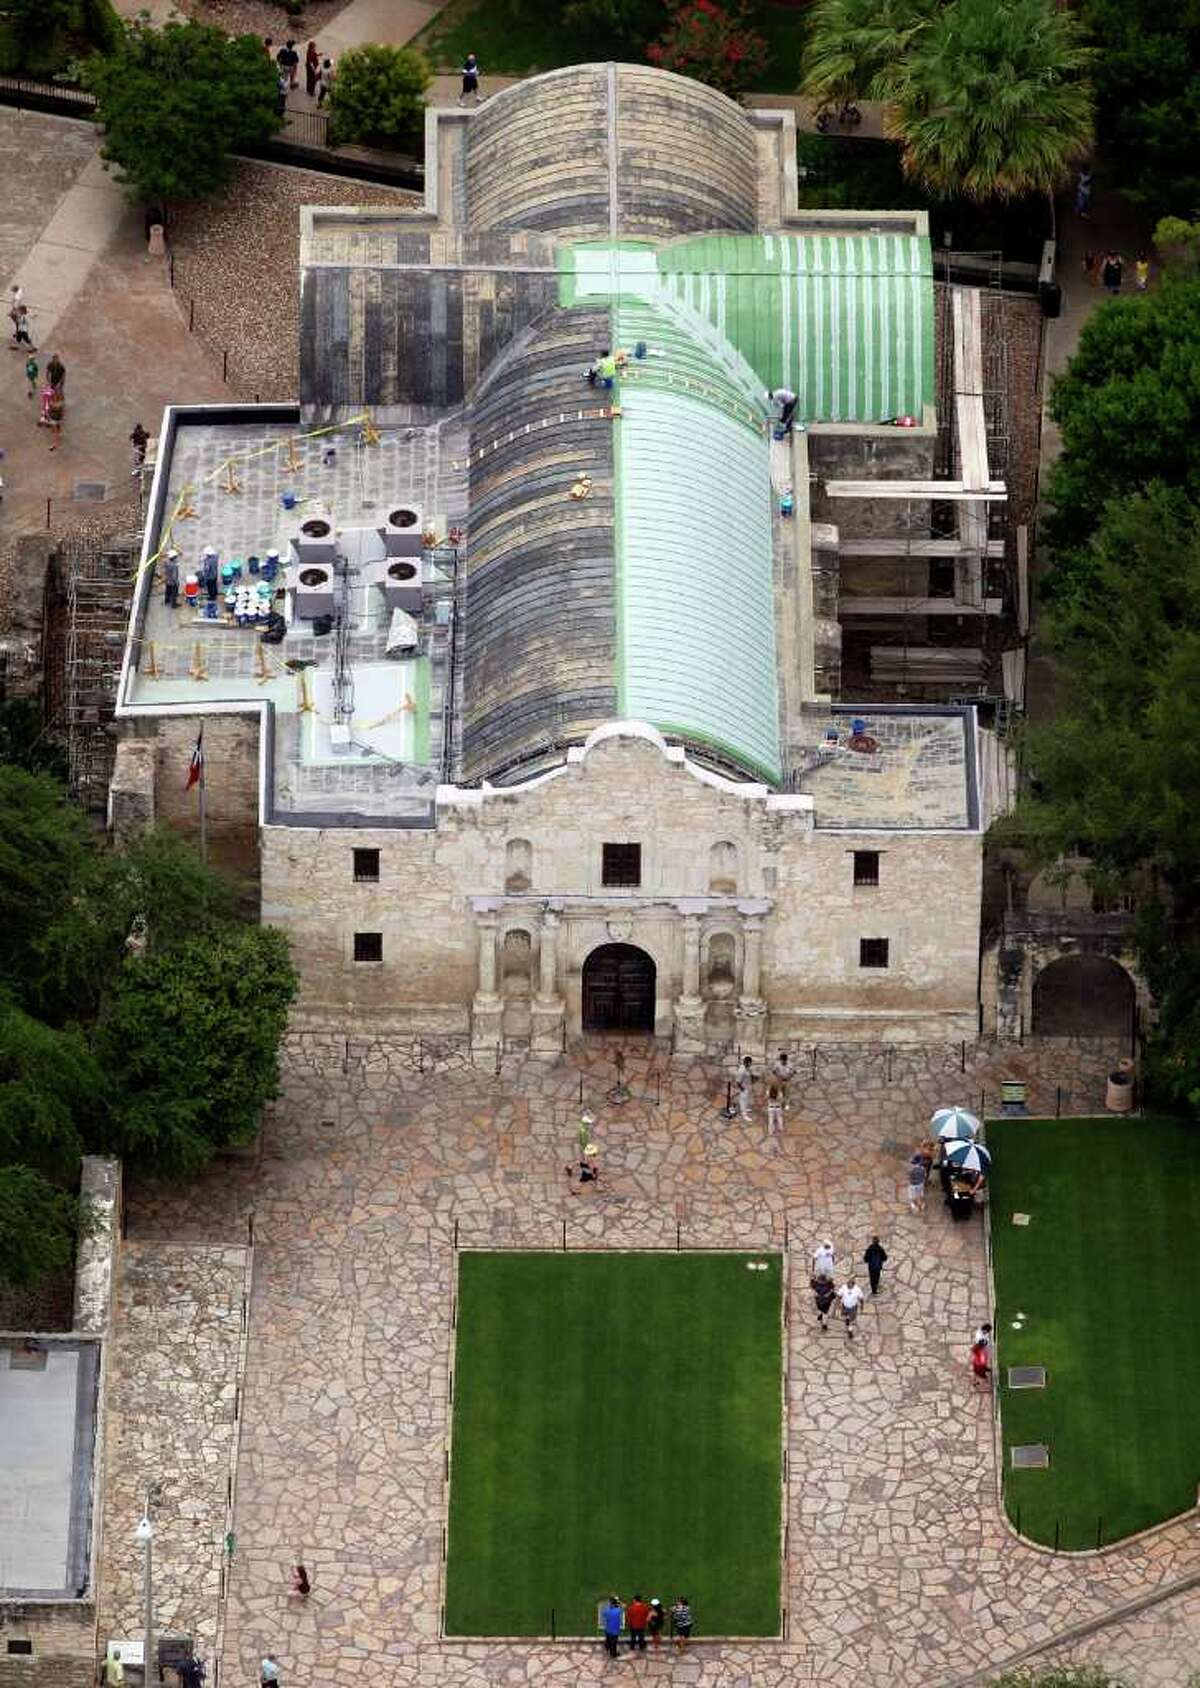 This summer, workers at the Alamo applied an acrylic waterproofing product called Hydro-Stop to the vaulted portion of roof's exterior to control leaks. An engineer's report called water intrusion the